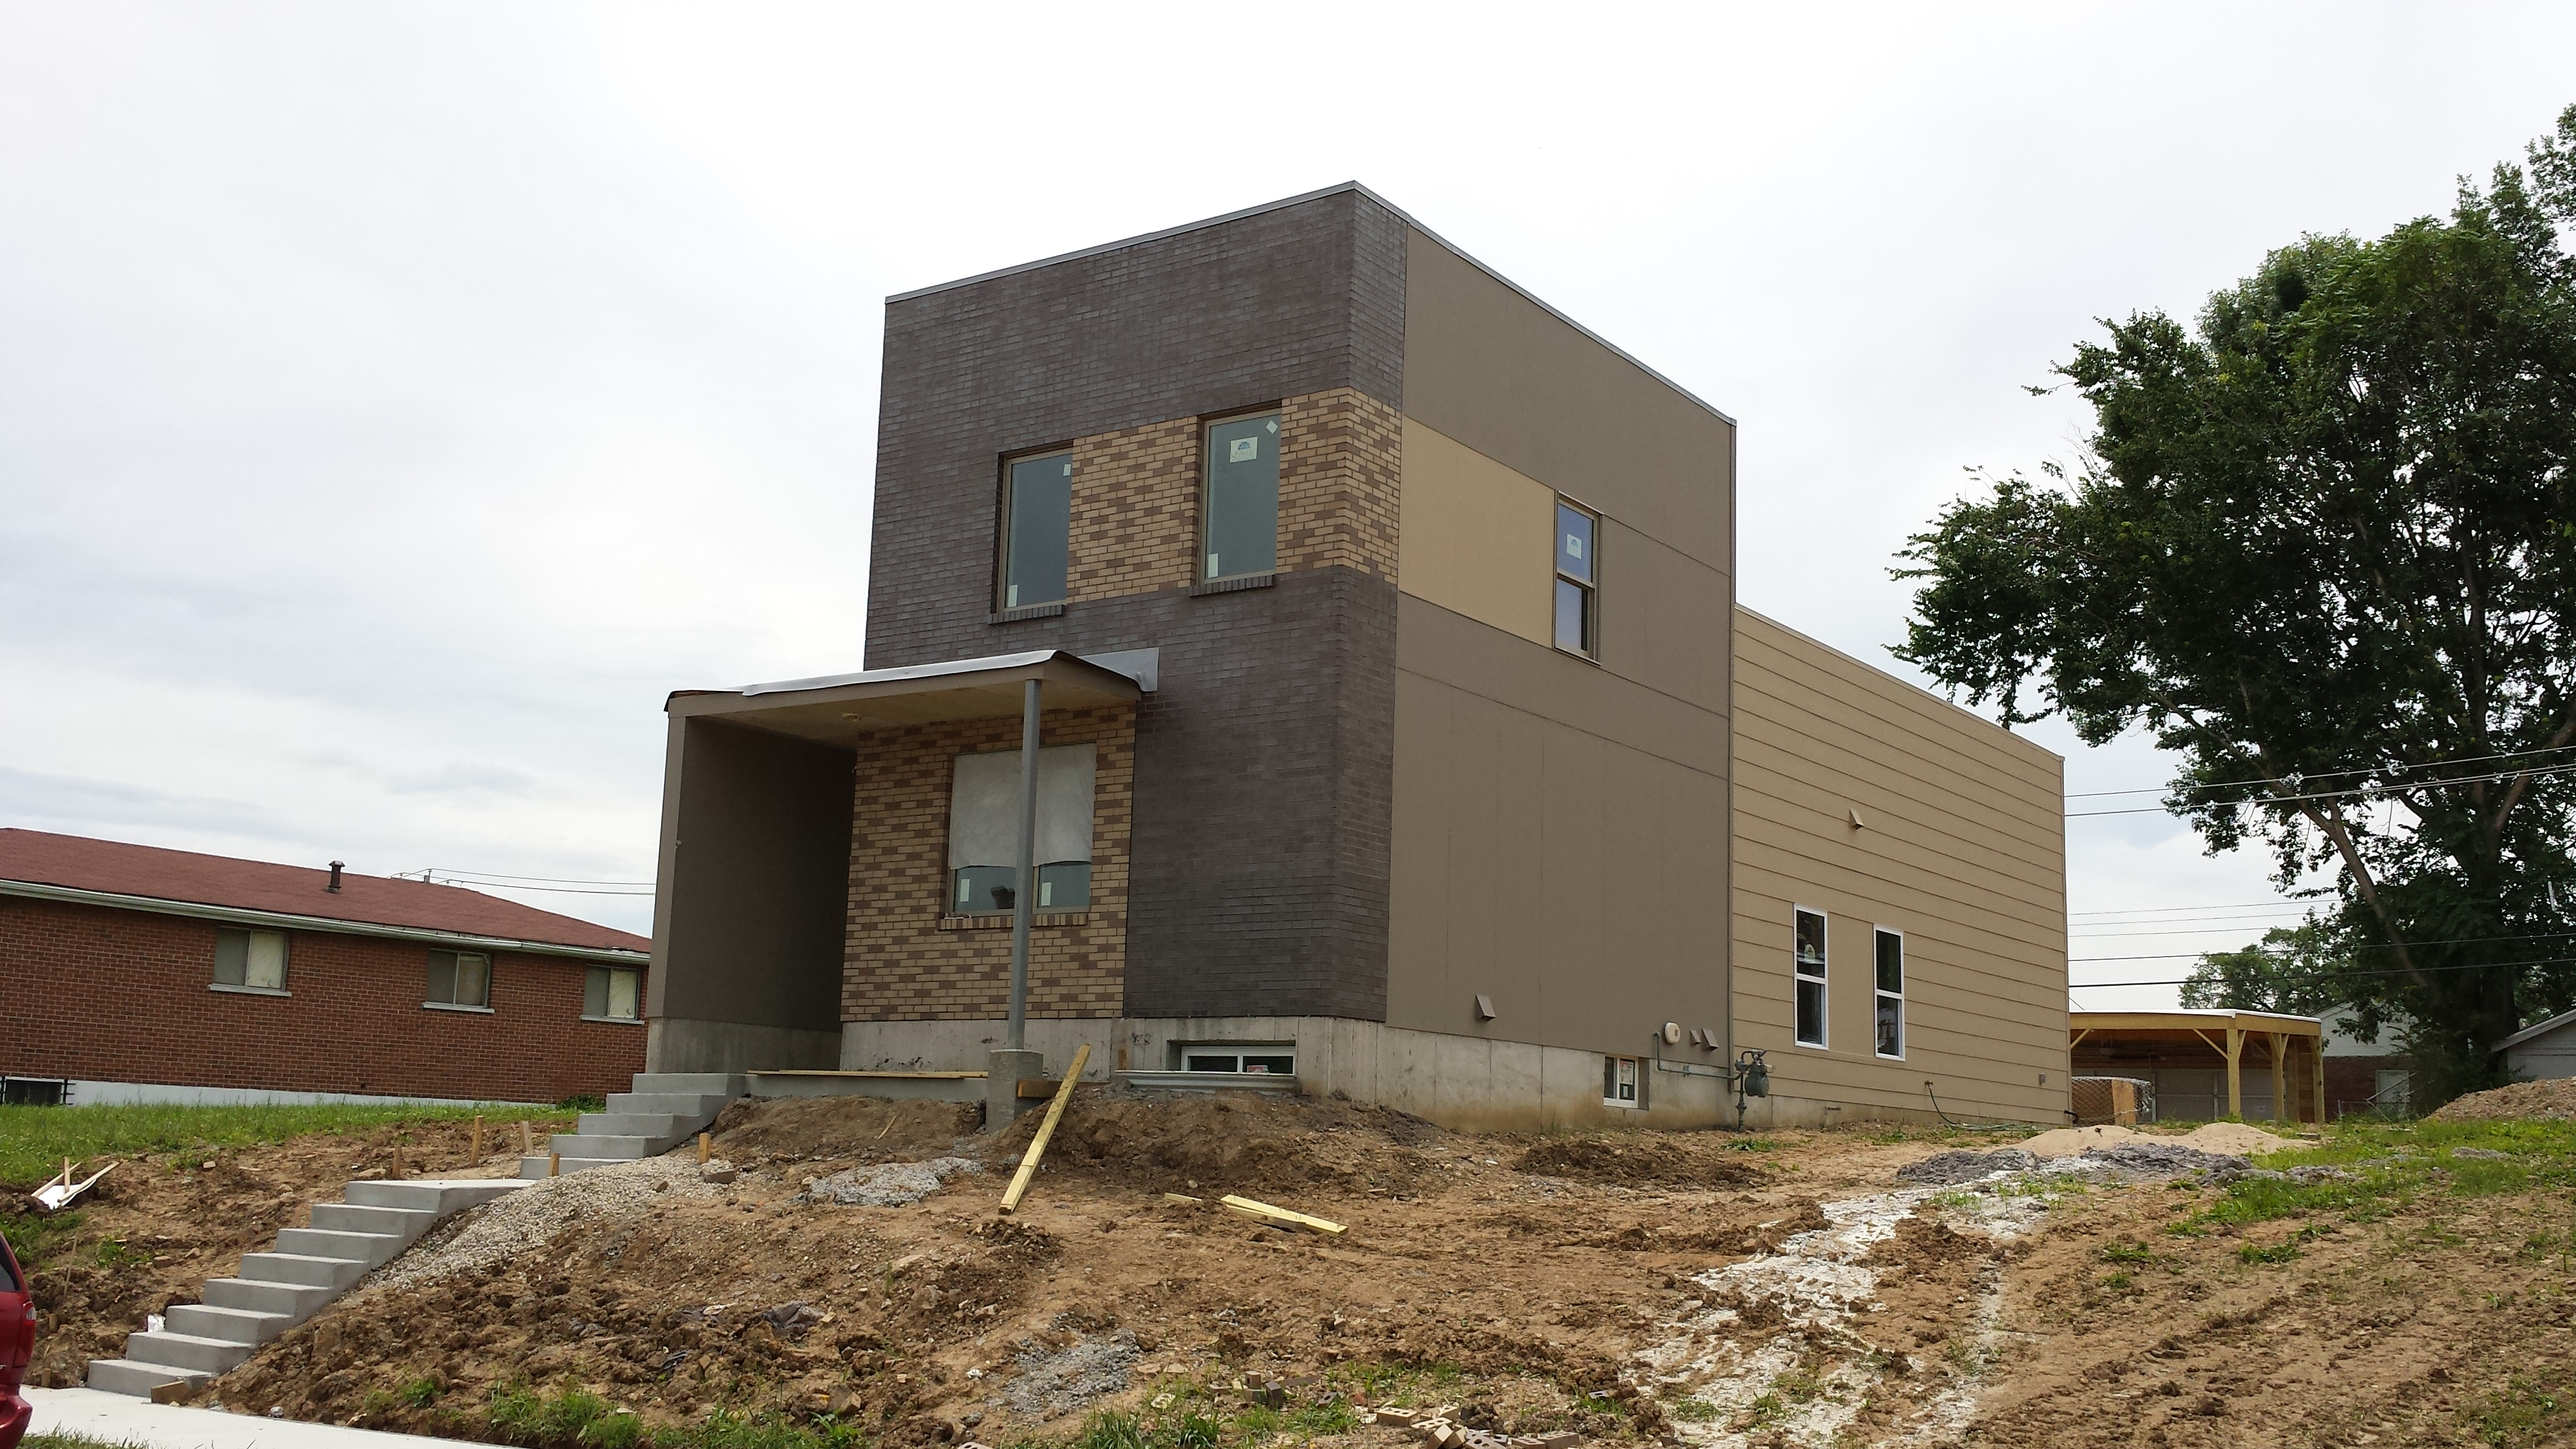 New Botanical Heights Single Family Home Nearly Complete (4150 Blaine)